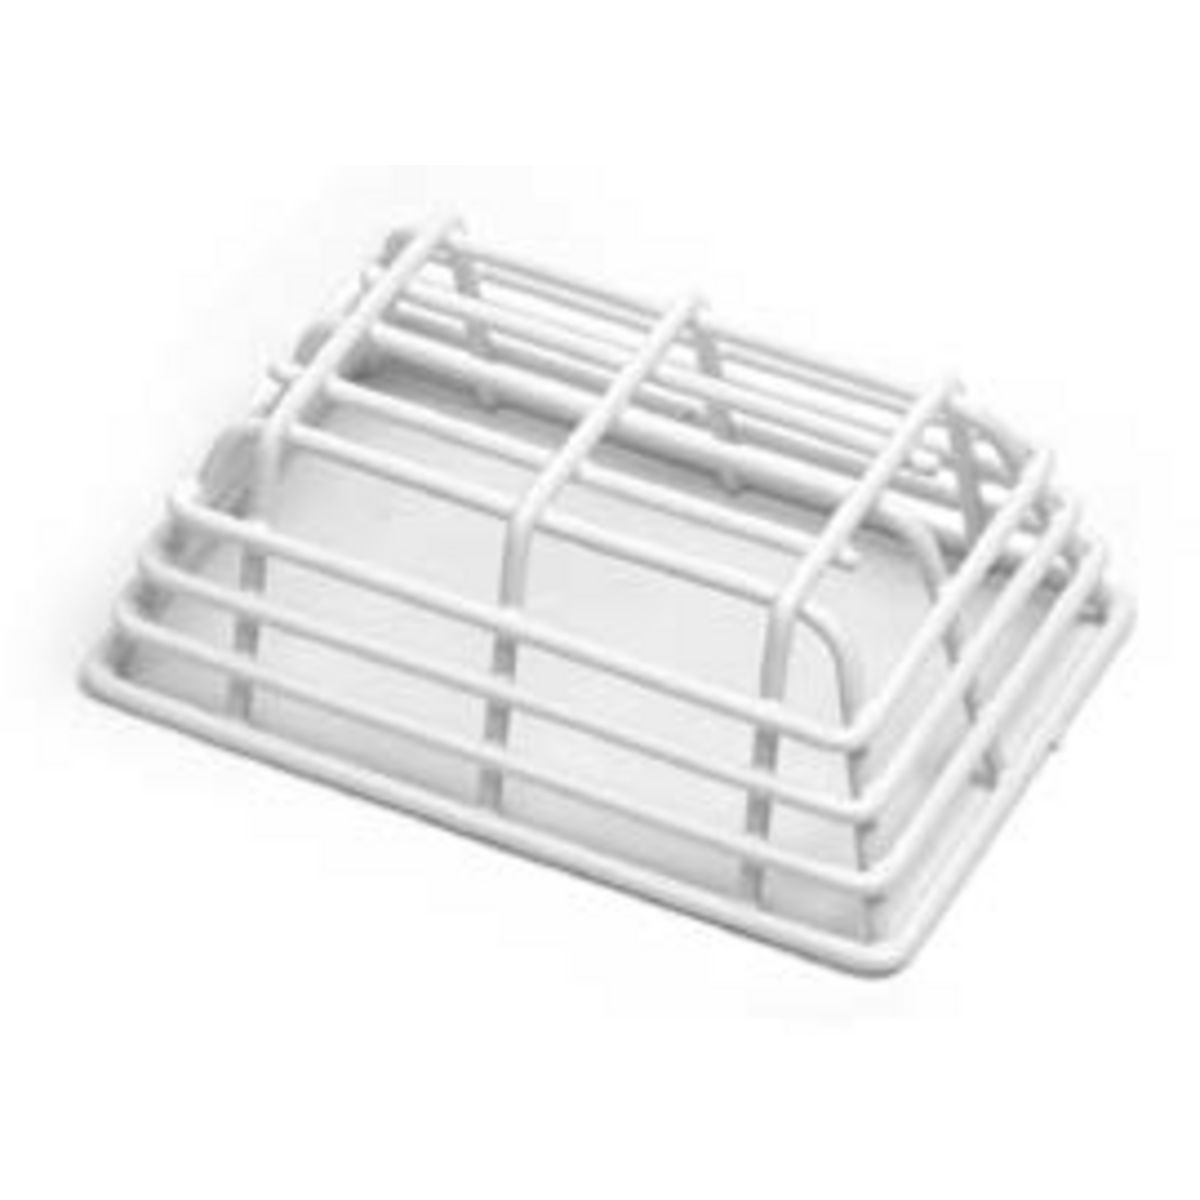 WIRE GUARD, FOR (LH) WALL SWITCHES